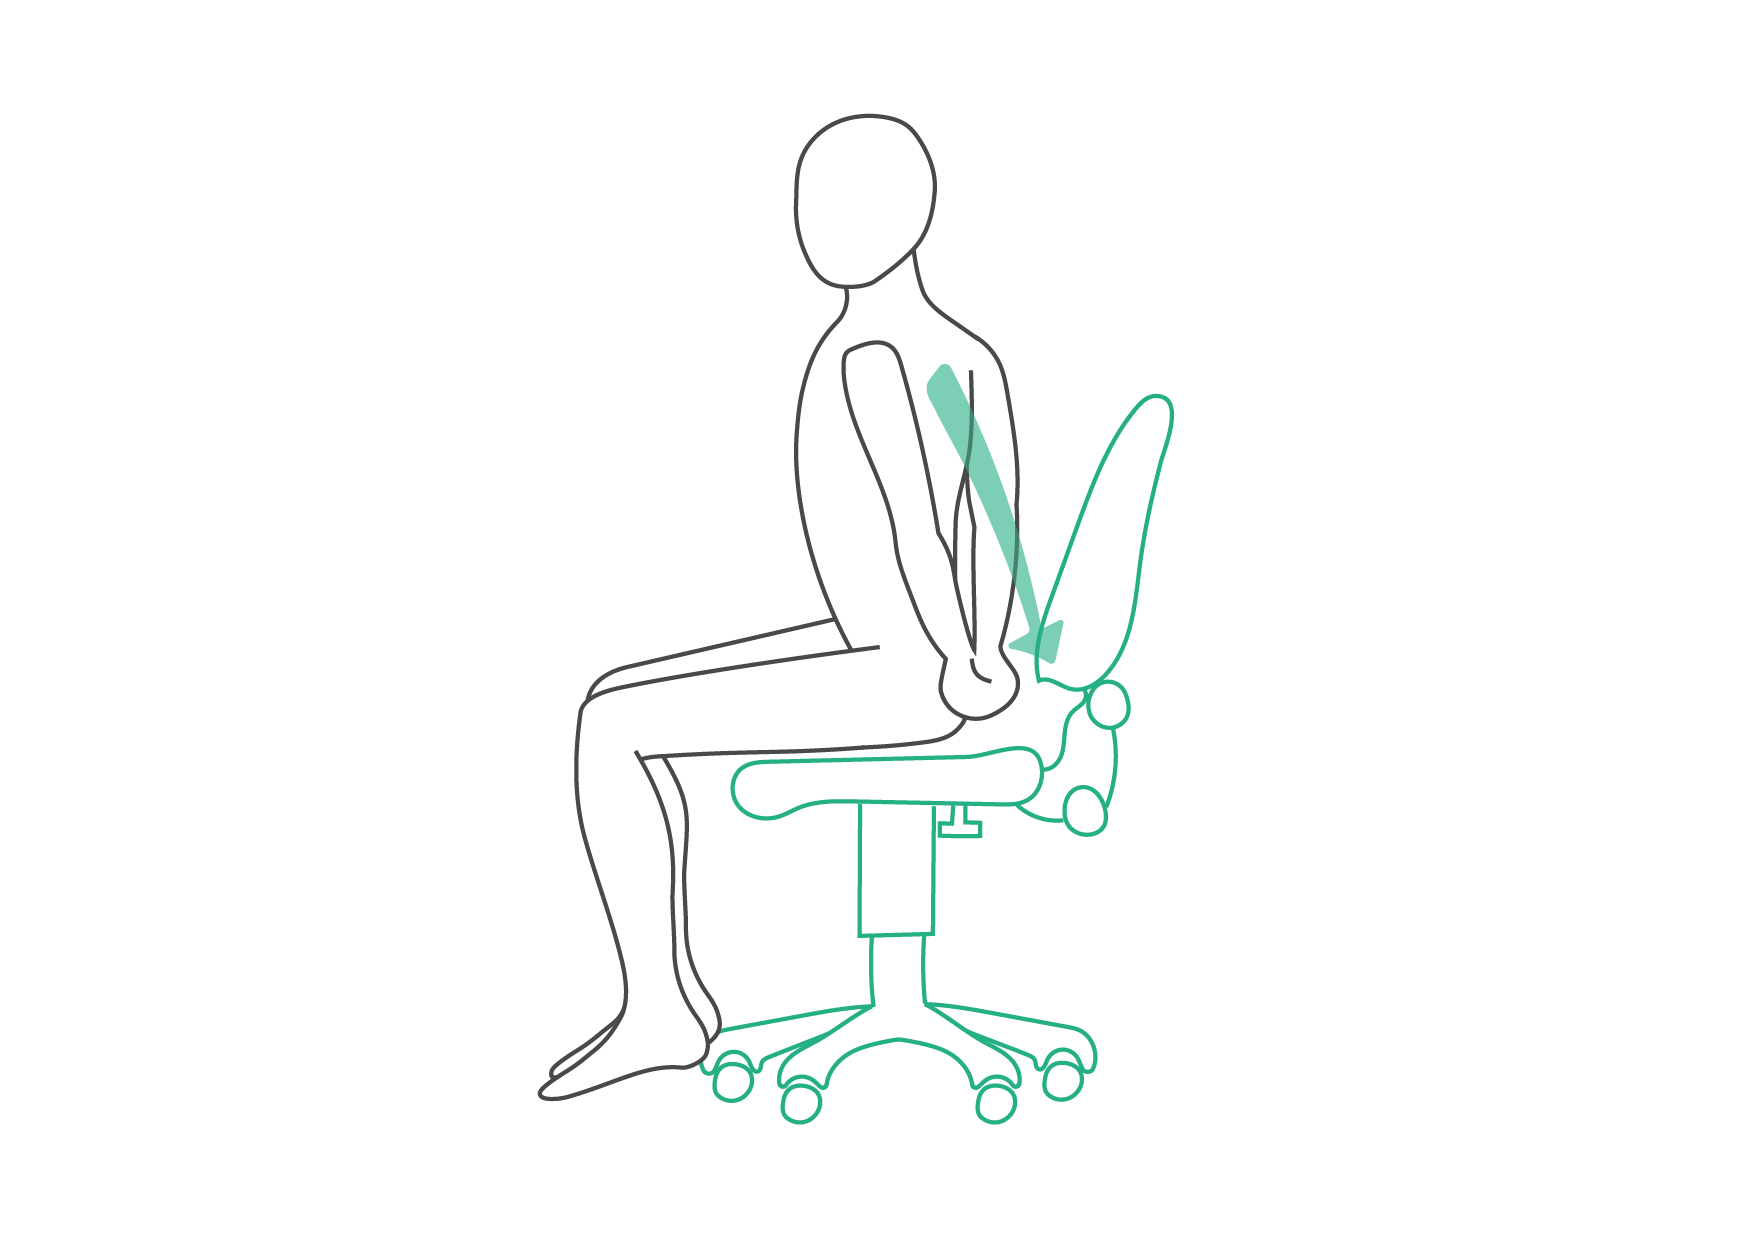 DeskStretch-3-01.png